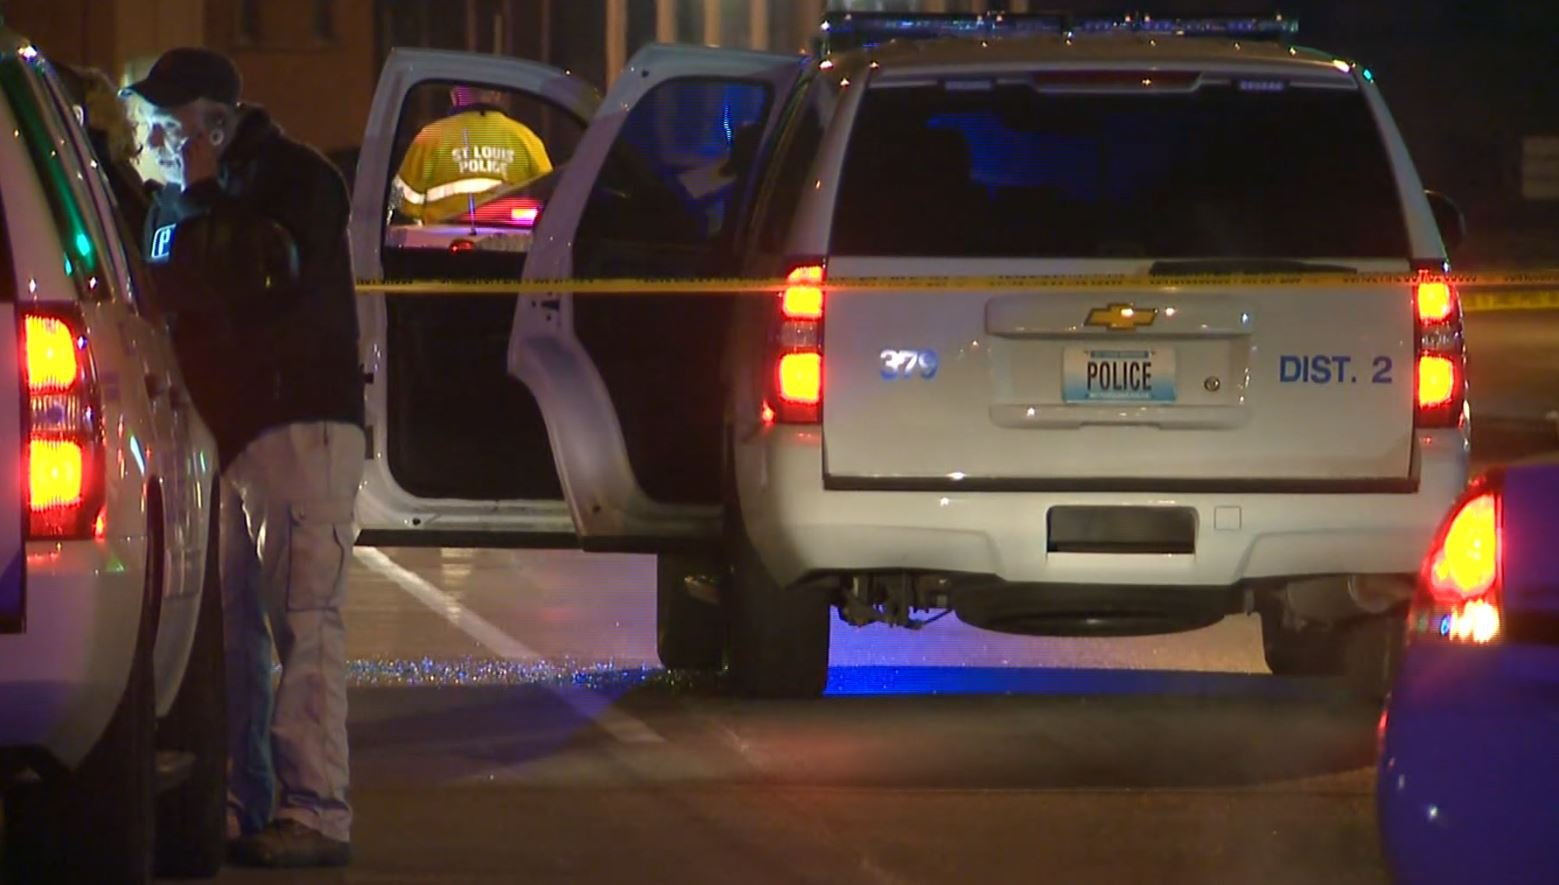 The officer's patrol car, with shattered glass on the road located at Hampton and Pernod. (KMOV)